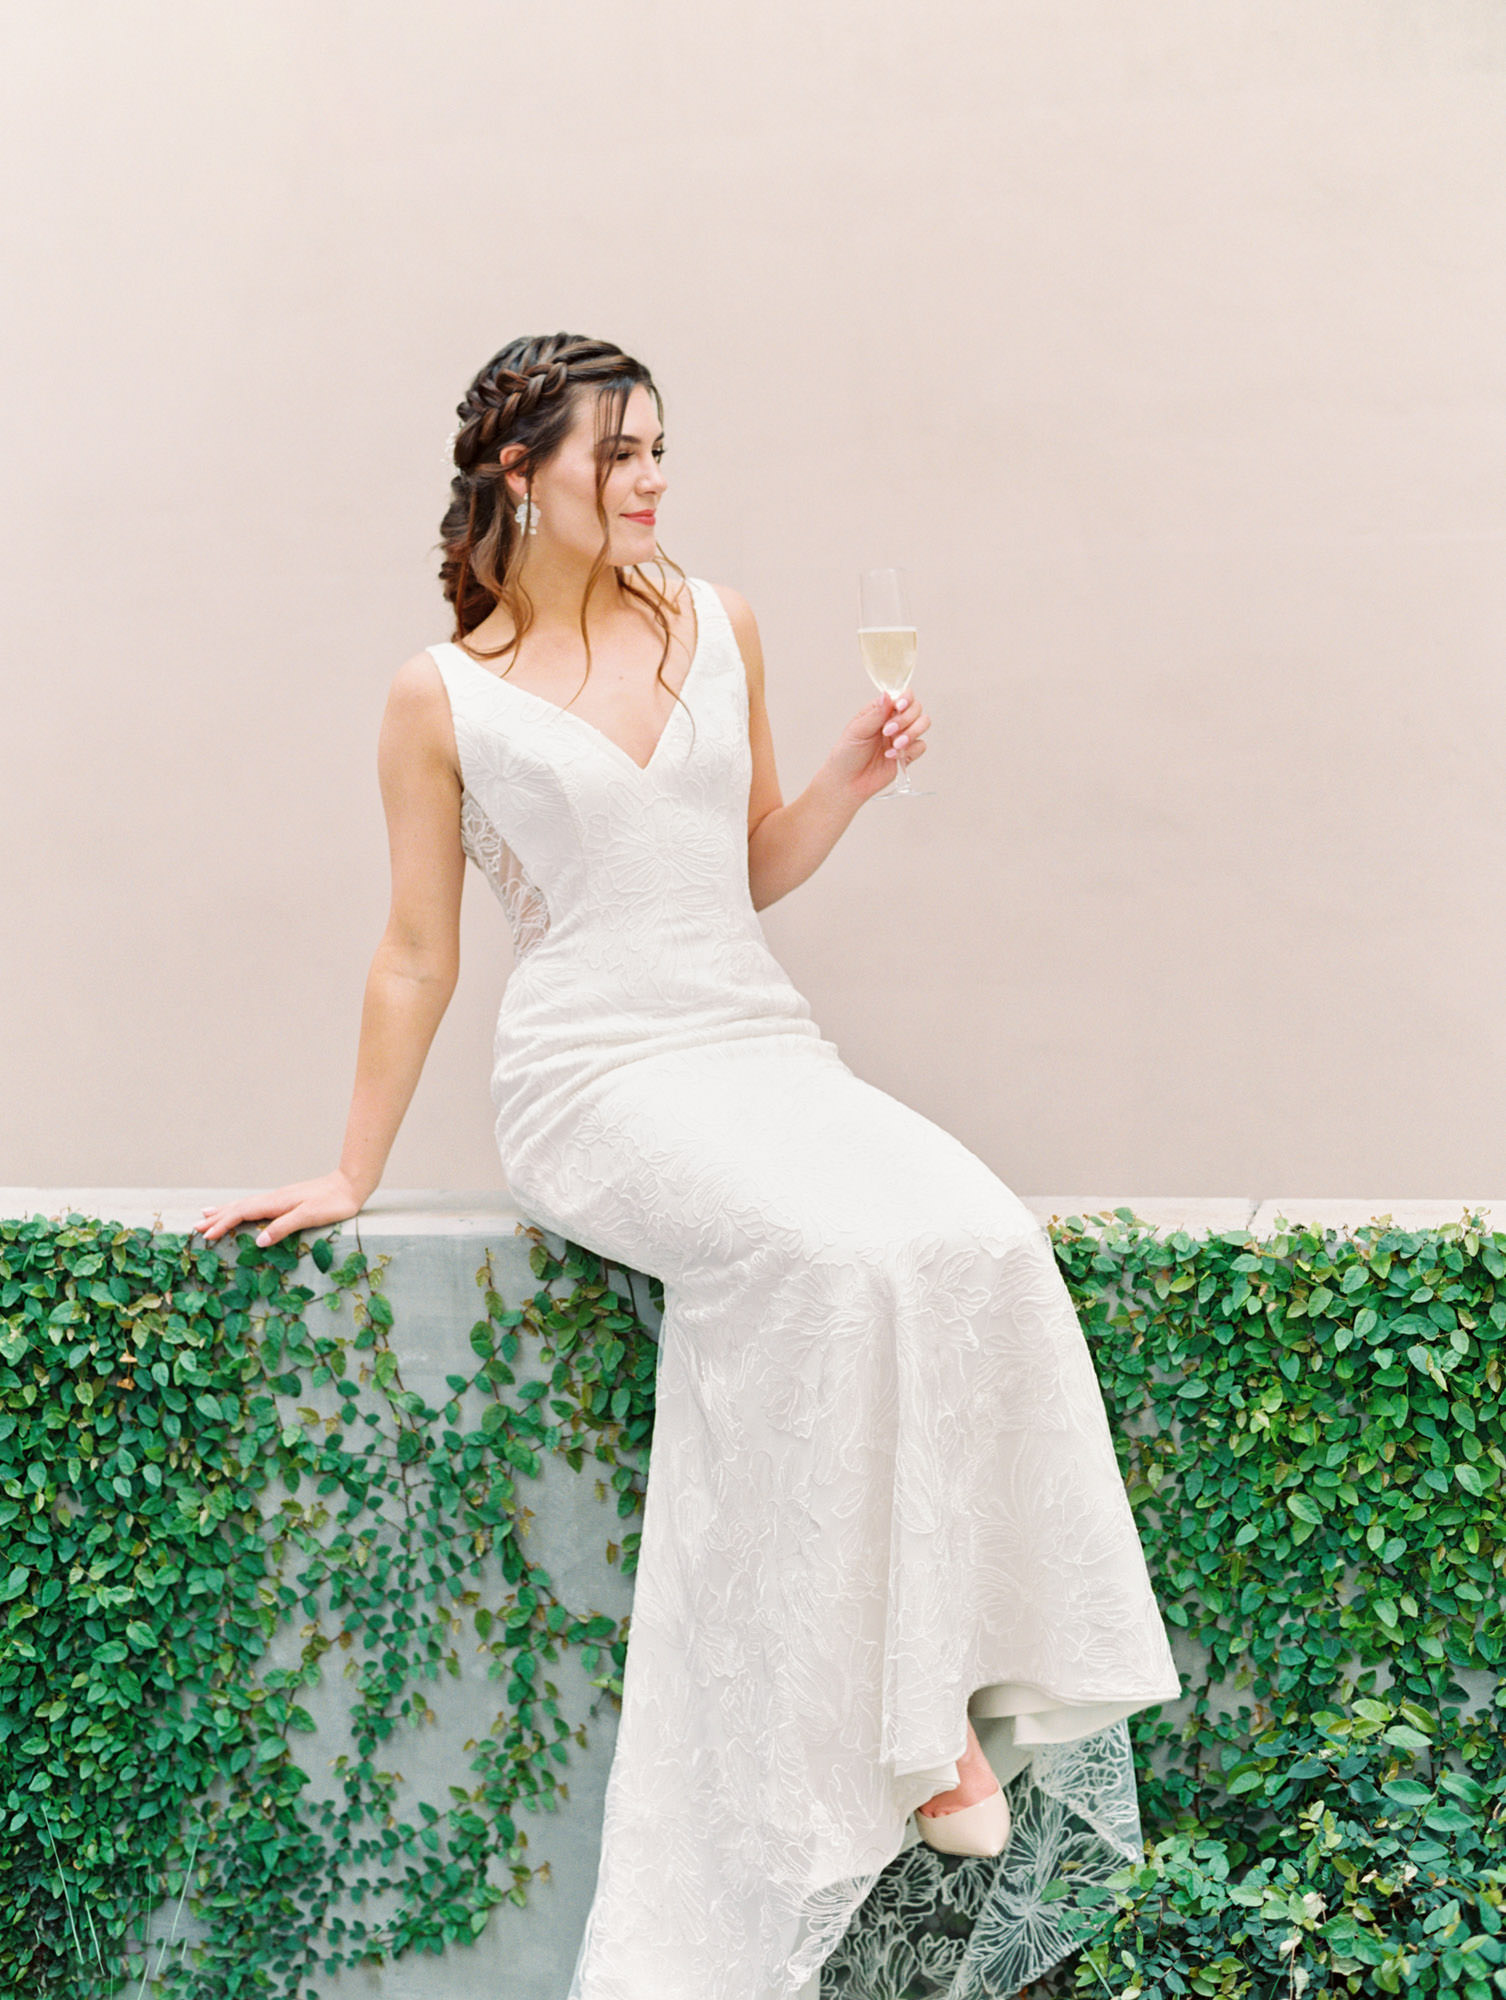 Low v neck crepe and beaded floral pattern with buttons all the way down the train. Gemma Kelly Faetanini wedding dress in San Diego by Cavin Elizabeth - San Diego film photographer. Wedding Fashion Inspiration.